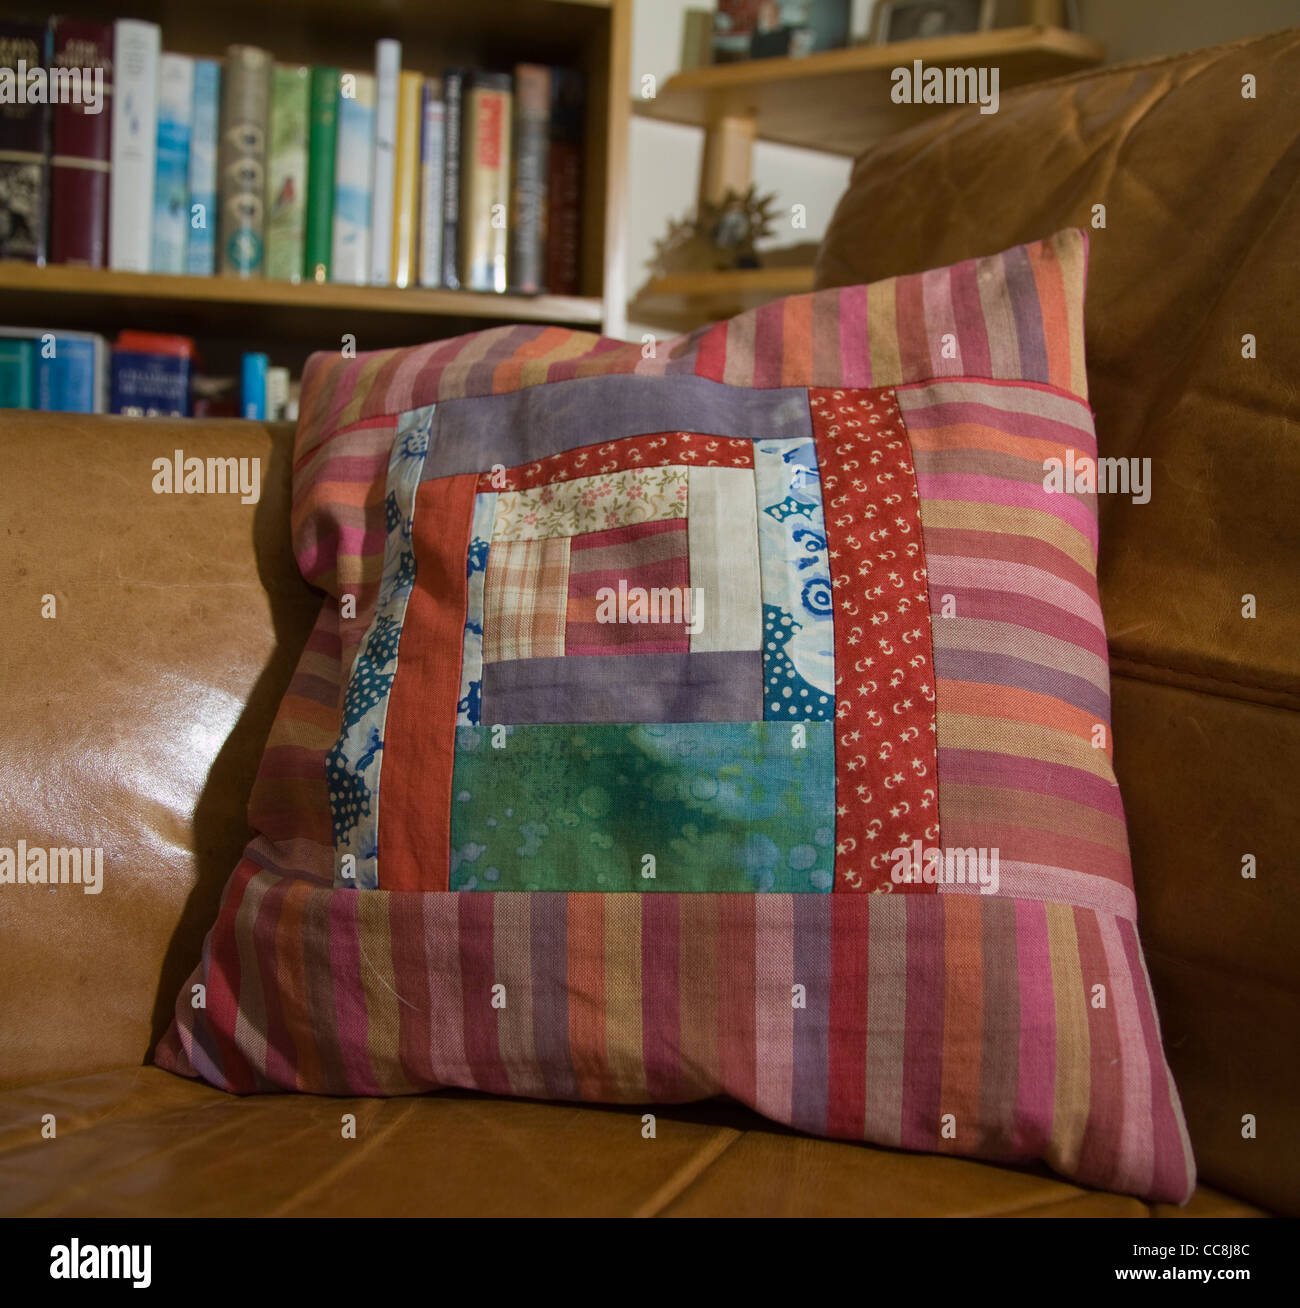 A patchwork cushion on a brown leather armchair - Stock Image